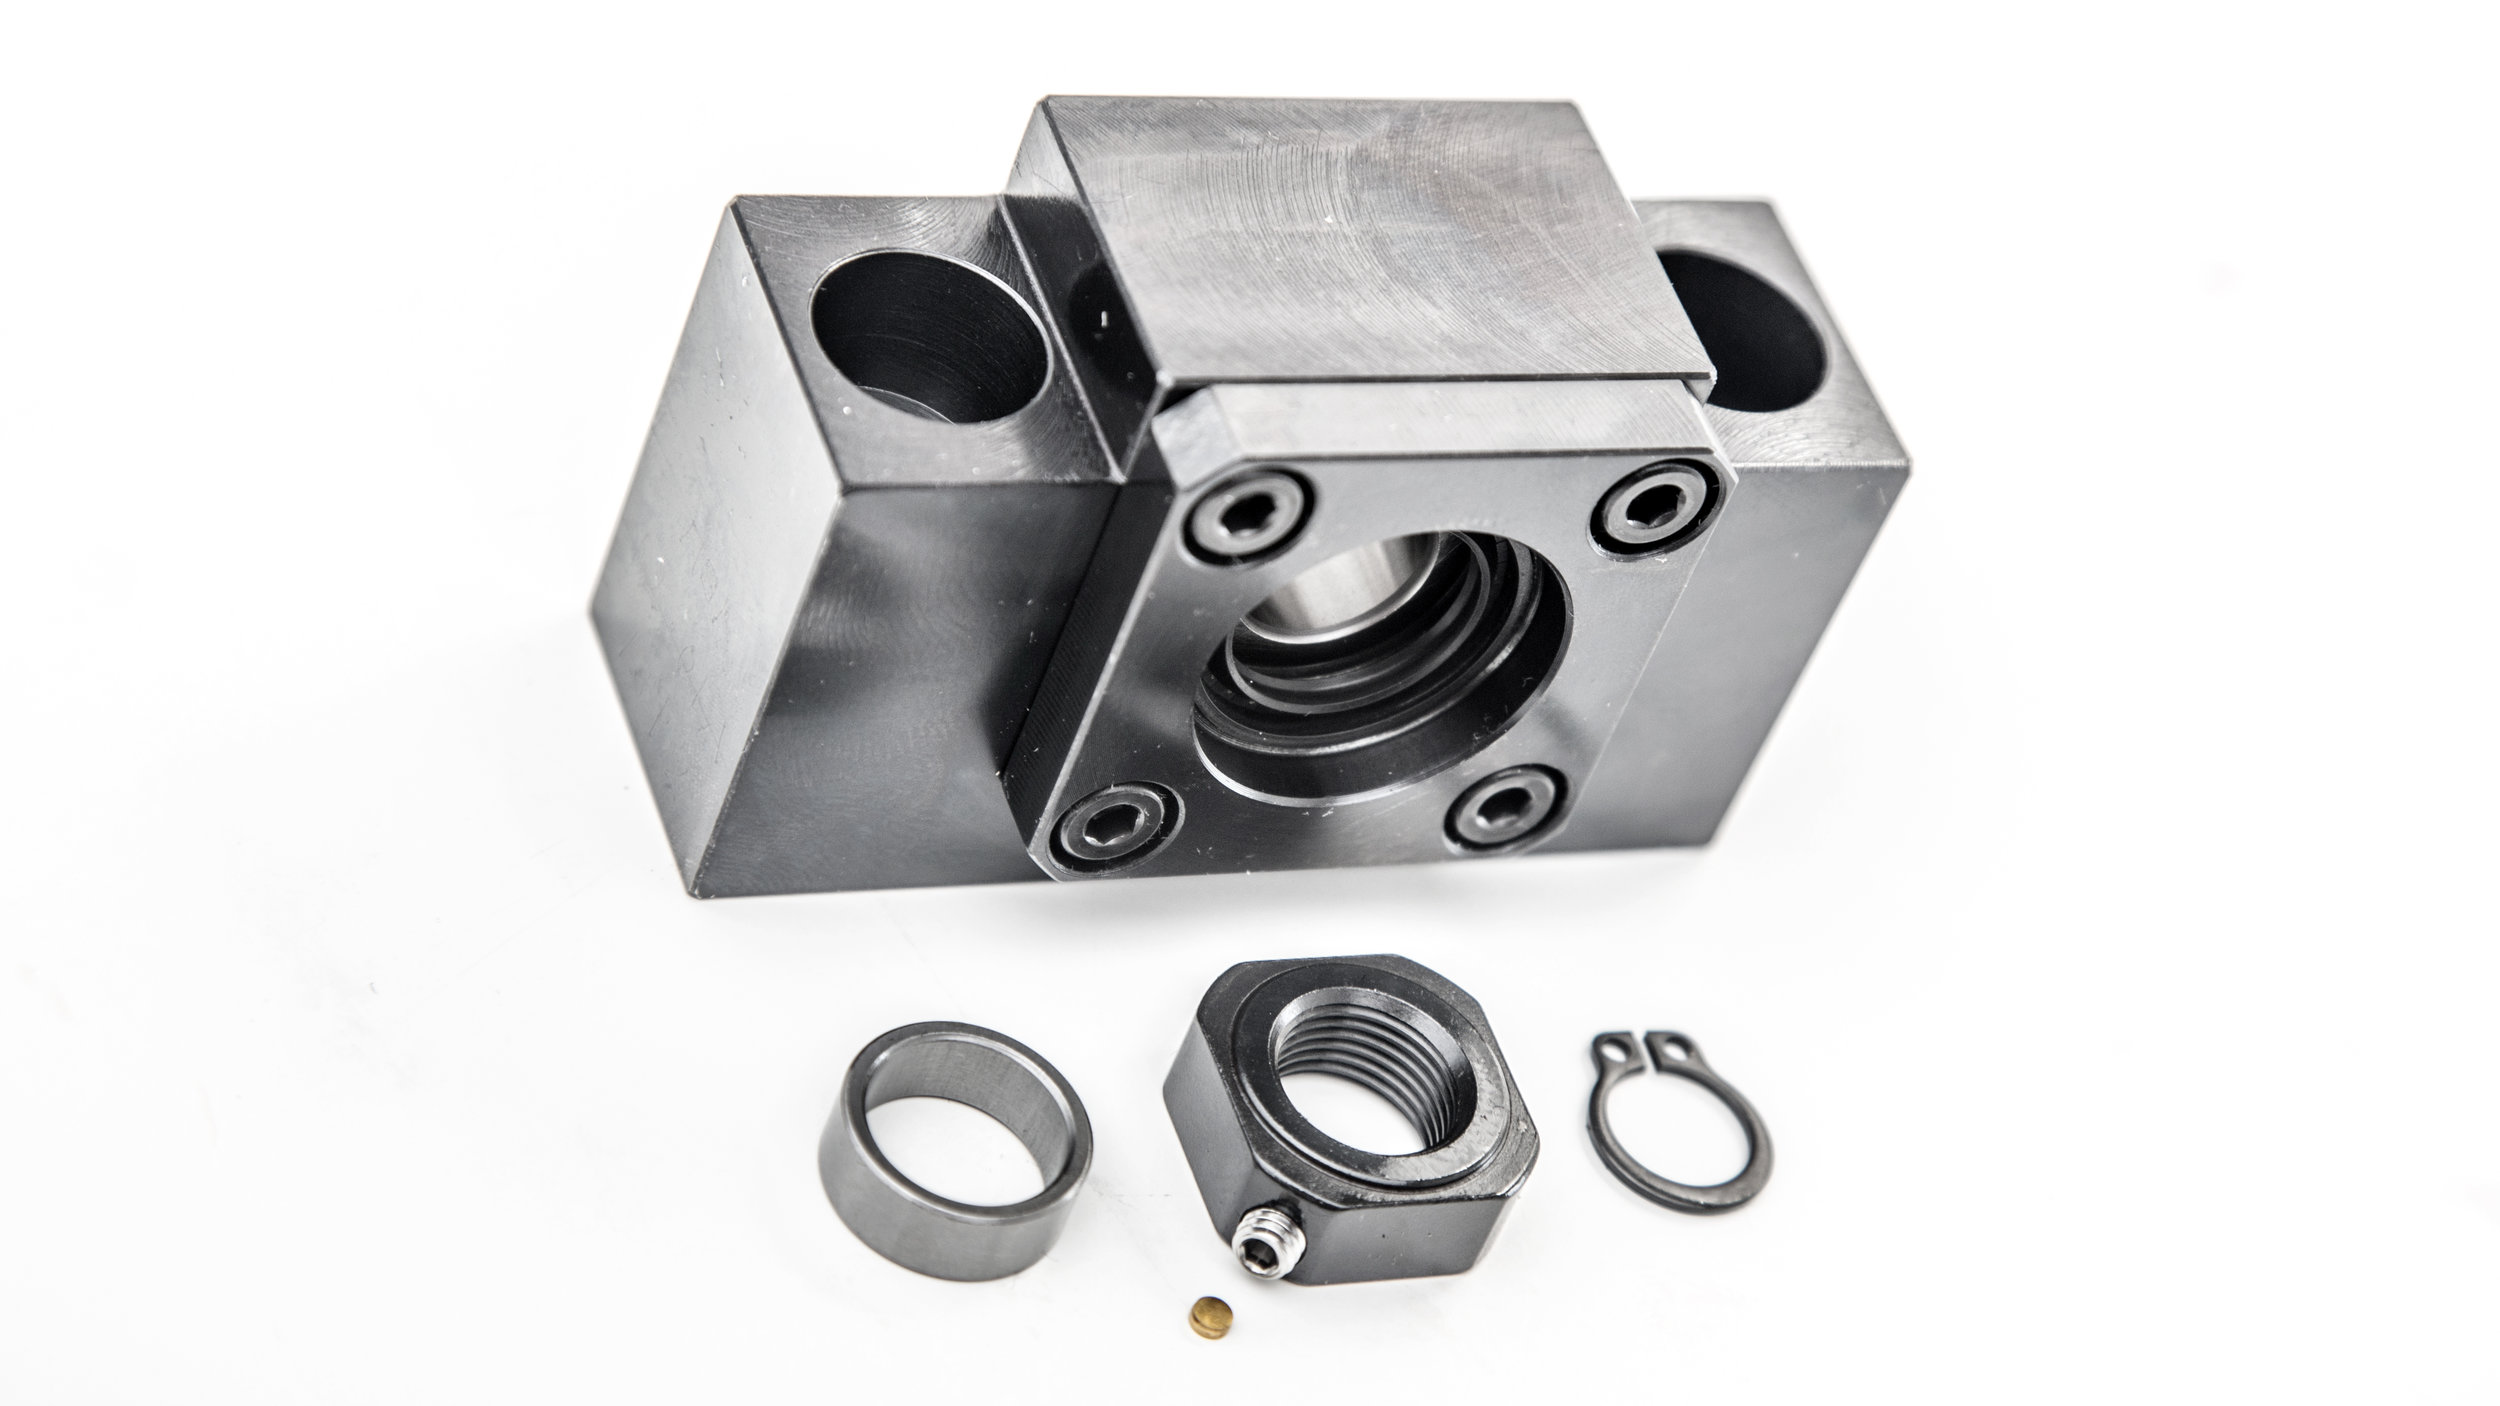 fixed square support units - Available sizesWBK06-01 WBK08-01 WBK10-01 WBK12-01 WBK15-01 WBK20-01 WBK25-01Datasheet